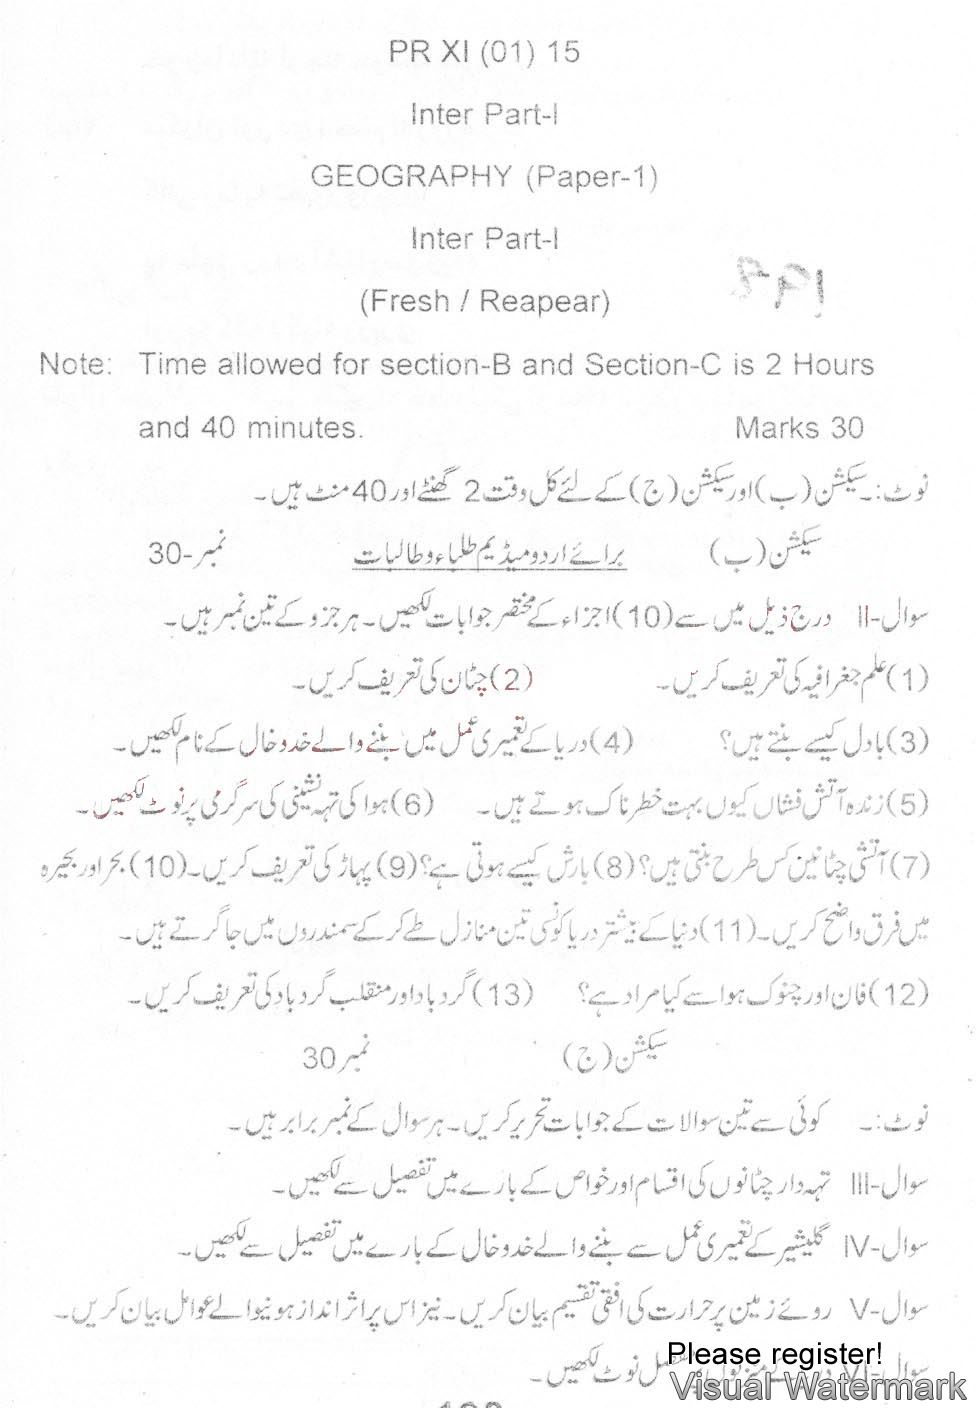 BISE Malakand Board Past Papers 2018 2019 Inter Part 1 2